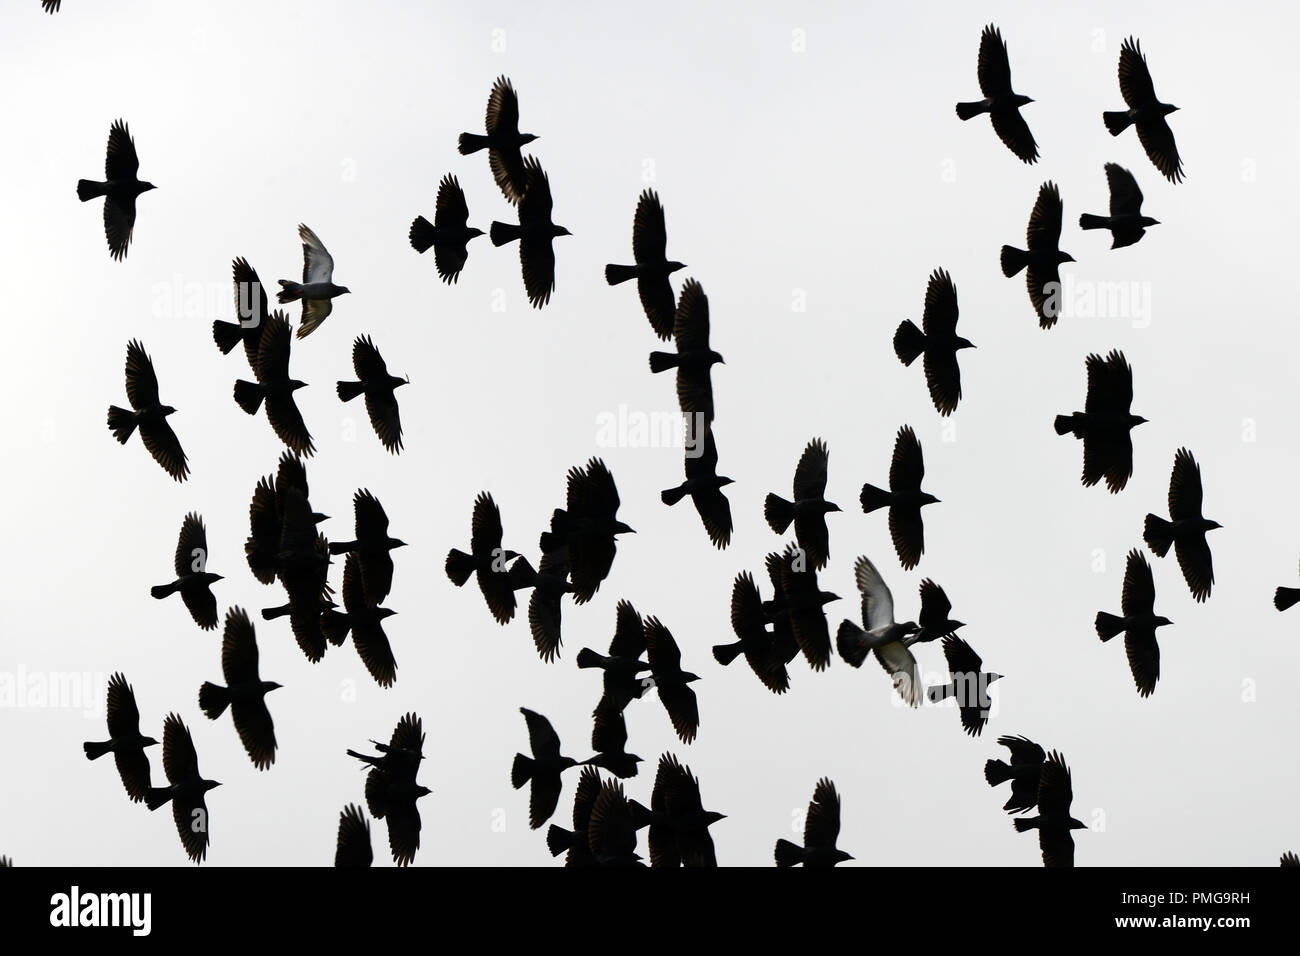 Two doves among a flock of  crows, 50 or more in total - Stock Image